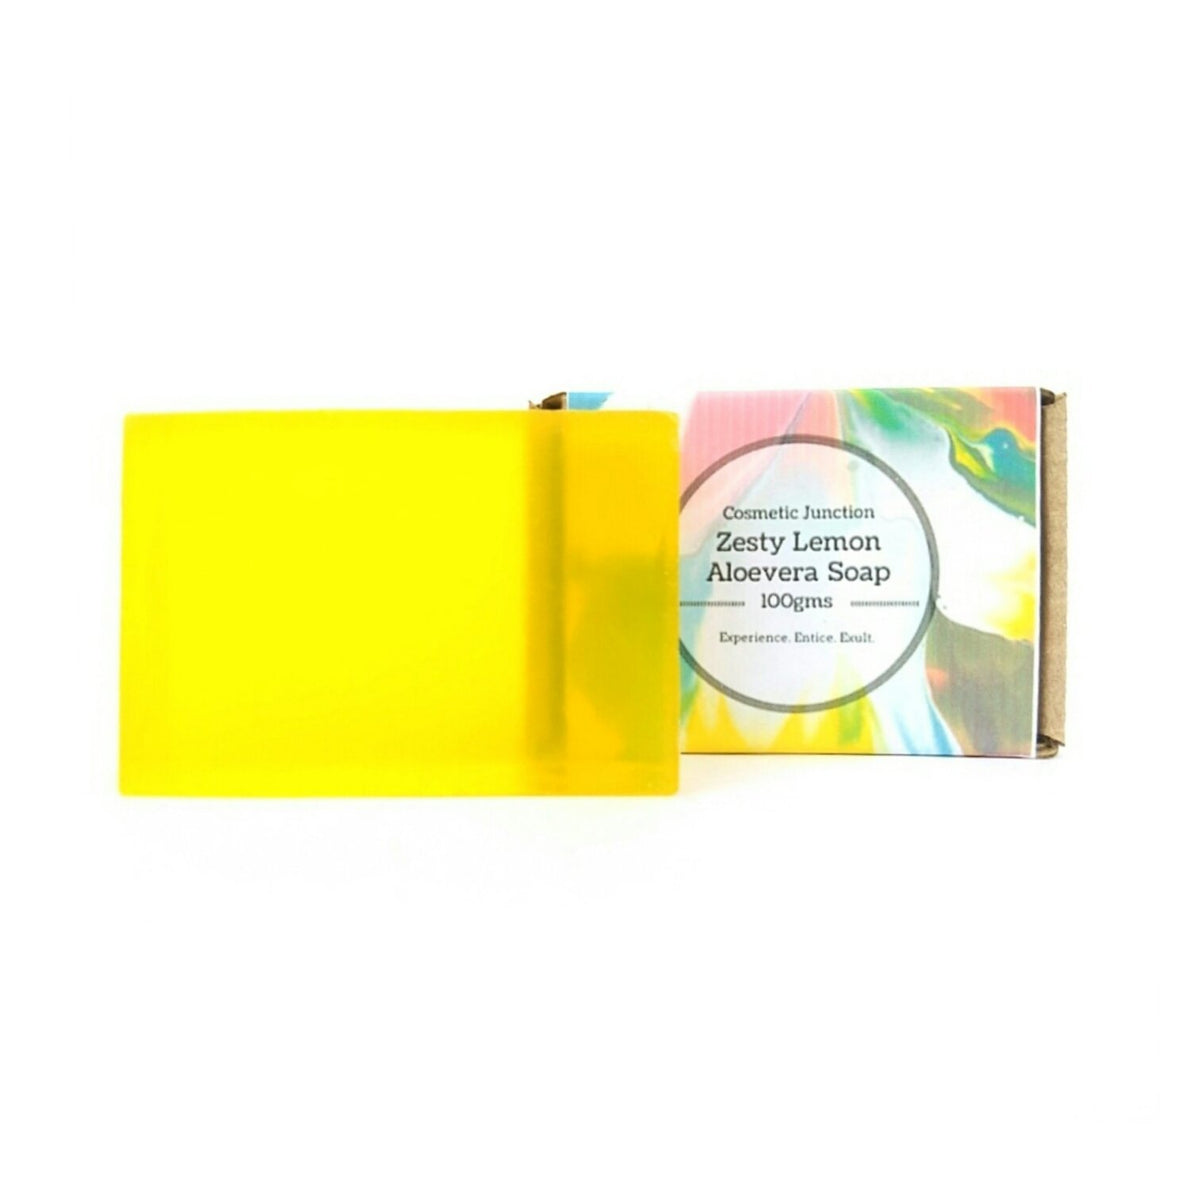 Zesty Lemon Aloevera Soap - Rossbelle